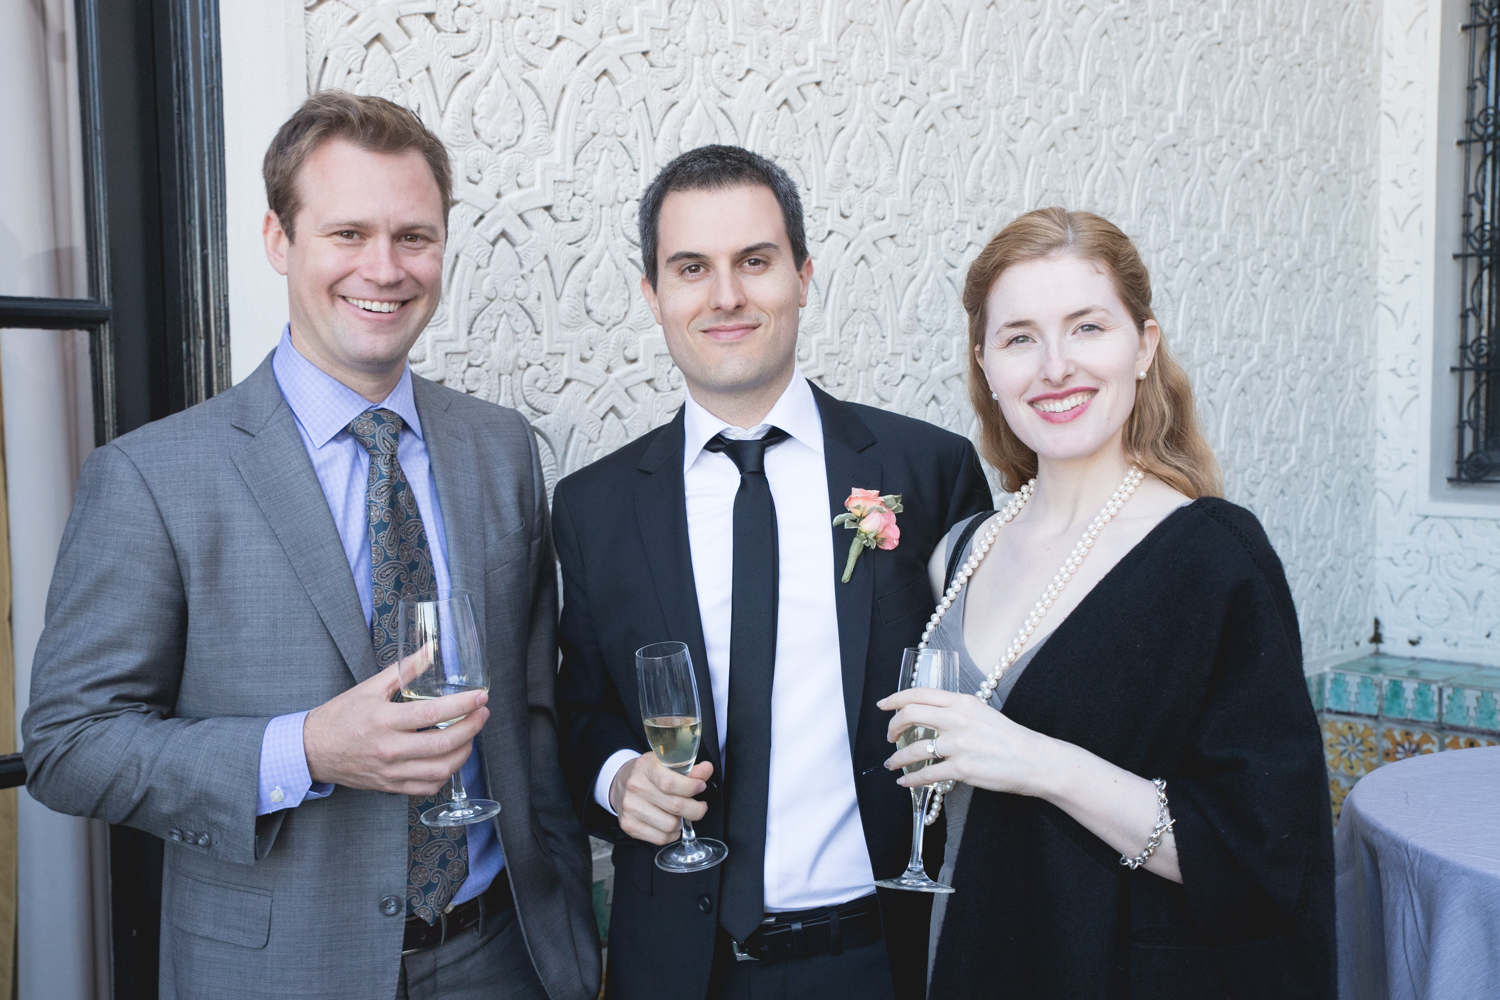 wedding-guests-fairmont-sf.jpg